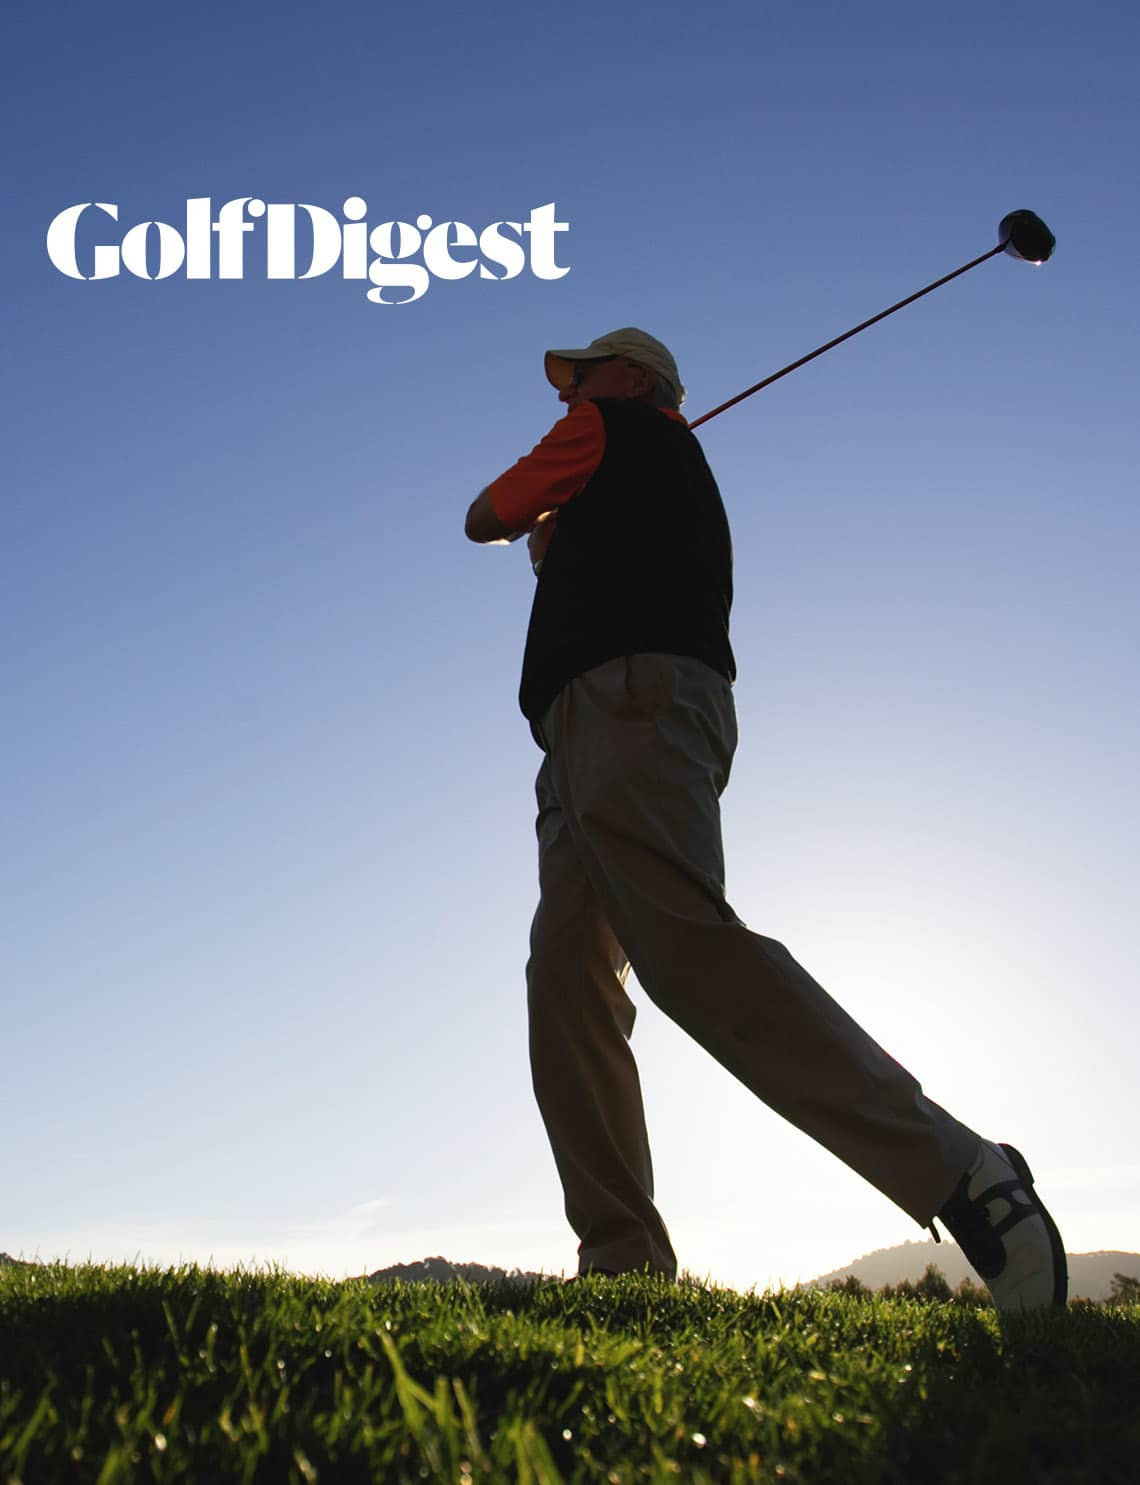 Advertise locally in Golf Digest in more than 100 markets across the U.S.